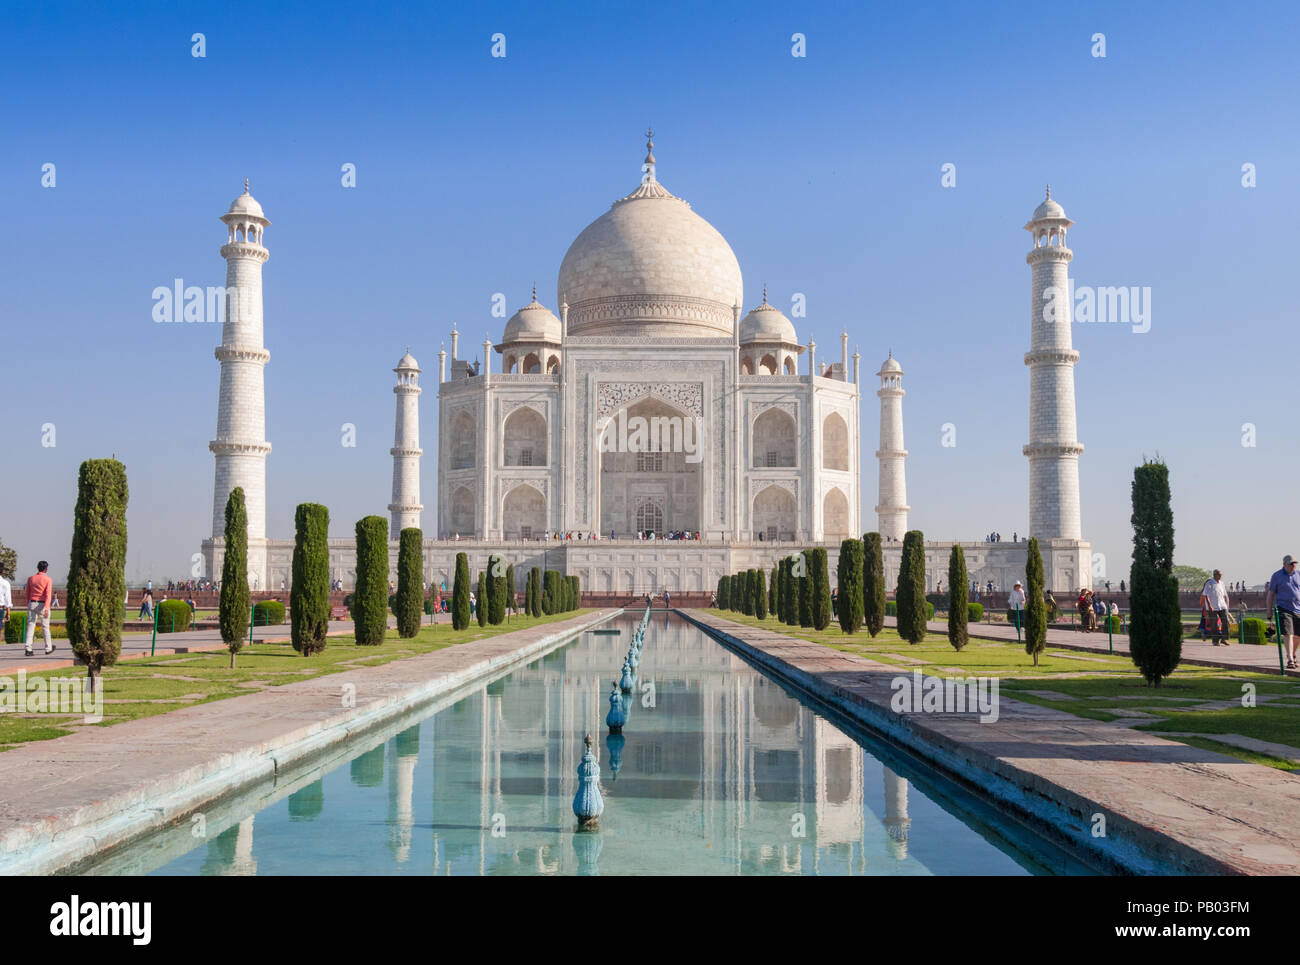 Taj Mahal early morning with pool reflection Agra India - Stock Image